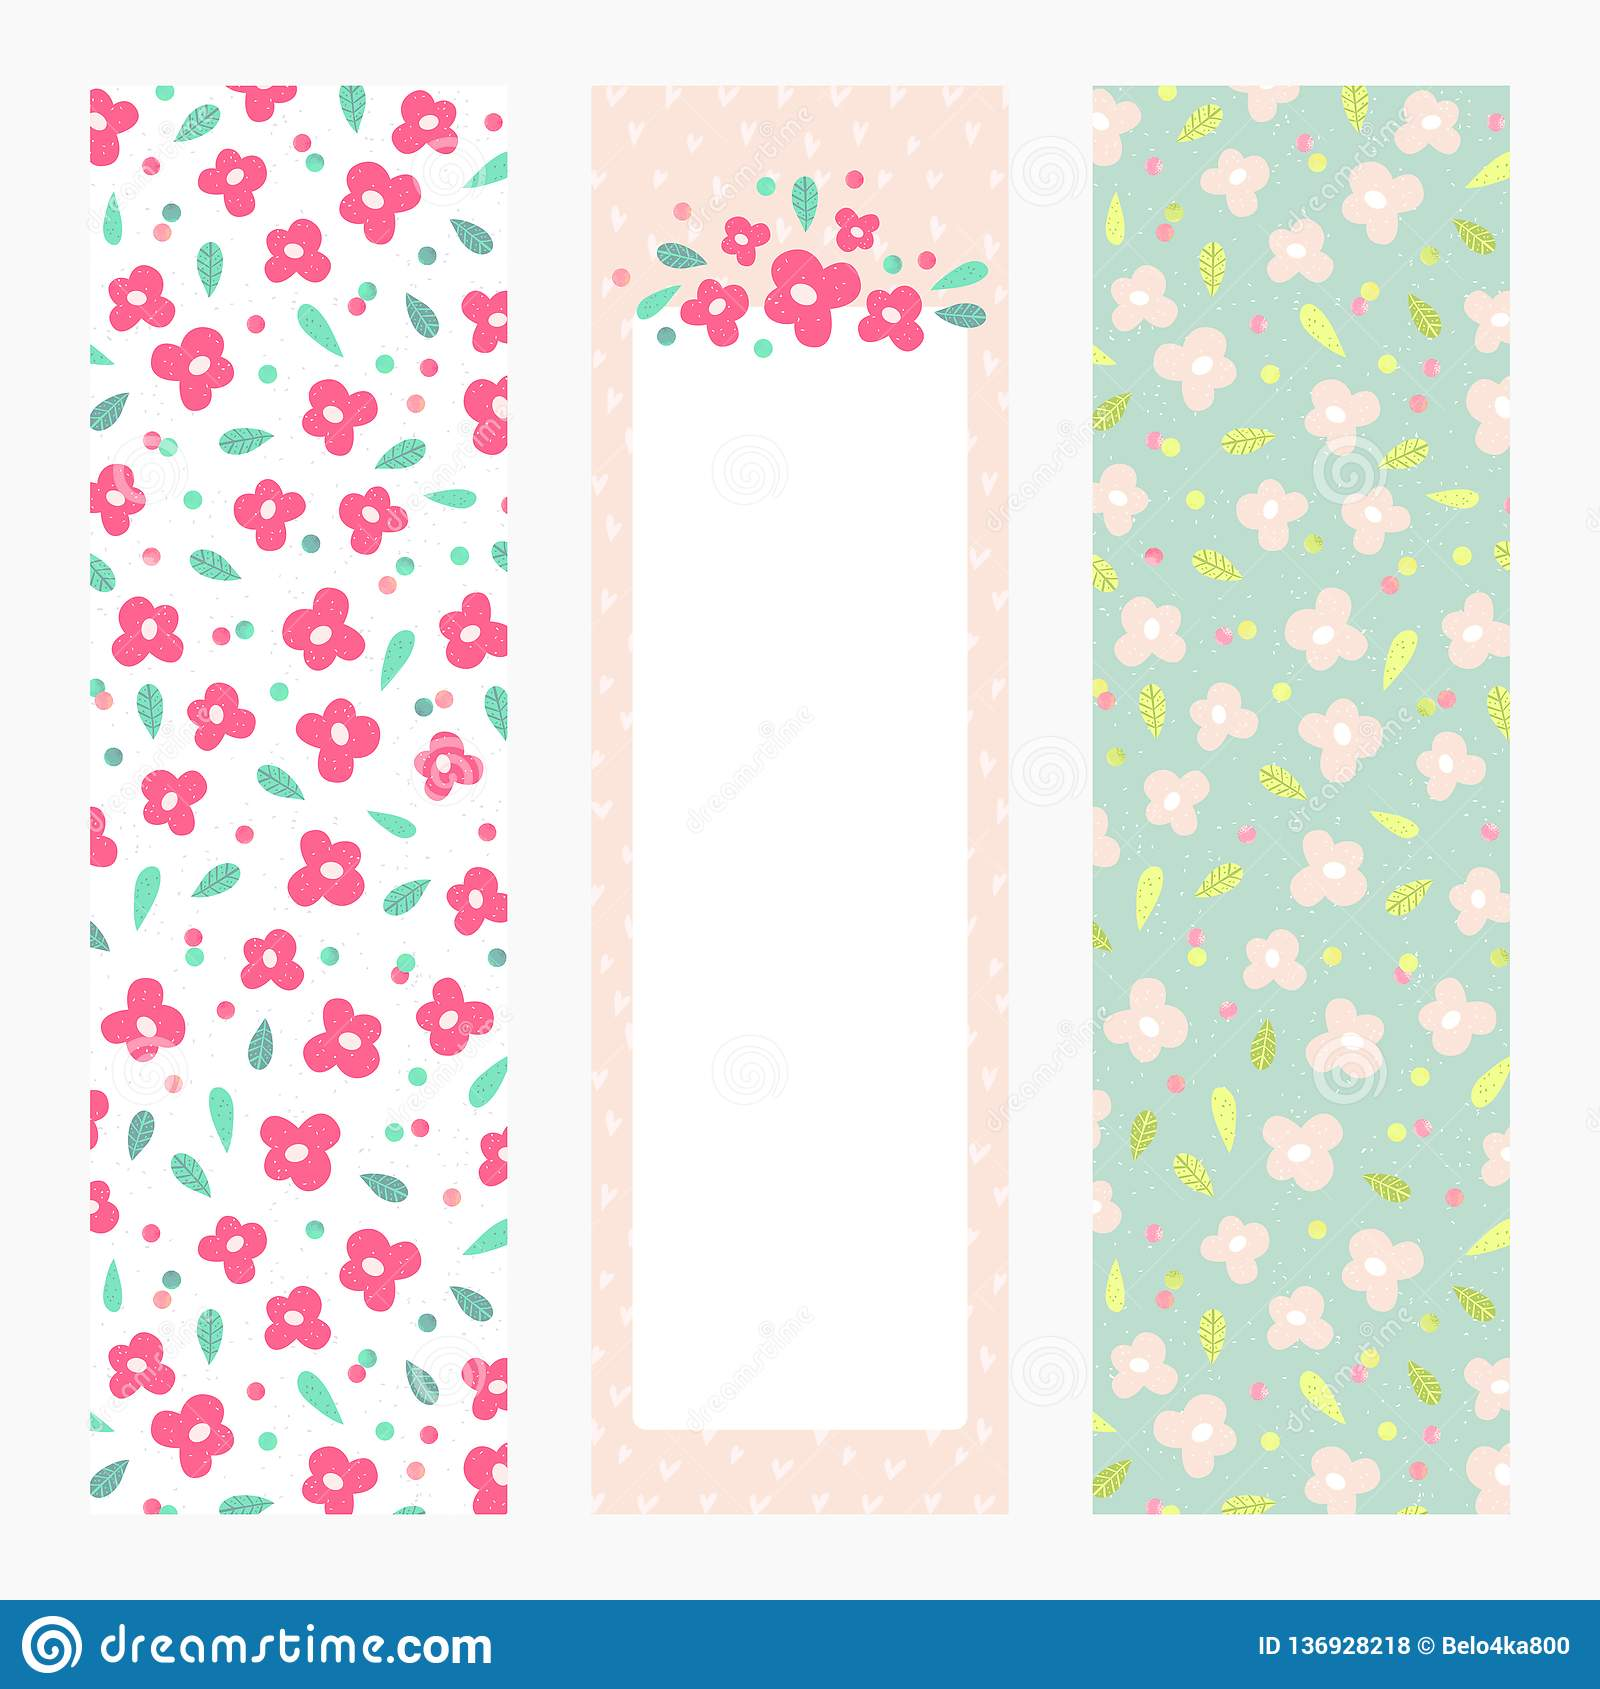 graphic relating to Bookmark Printable called Printable Bookmarks Or Banners With Small Bouquets Upon Pastel